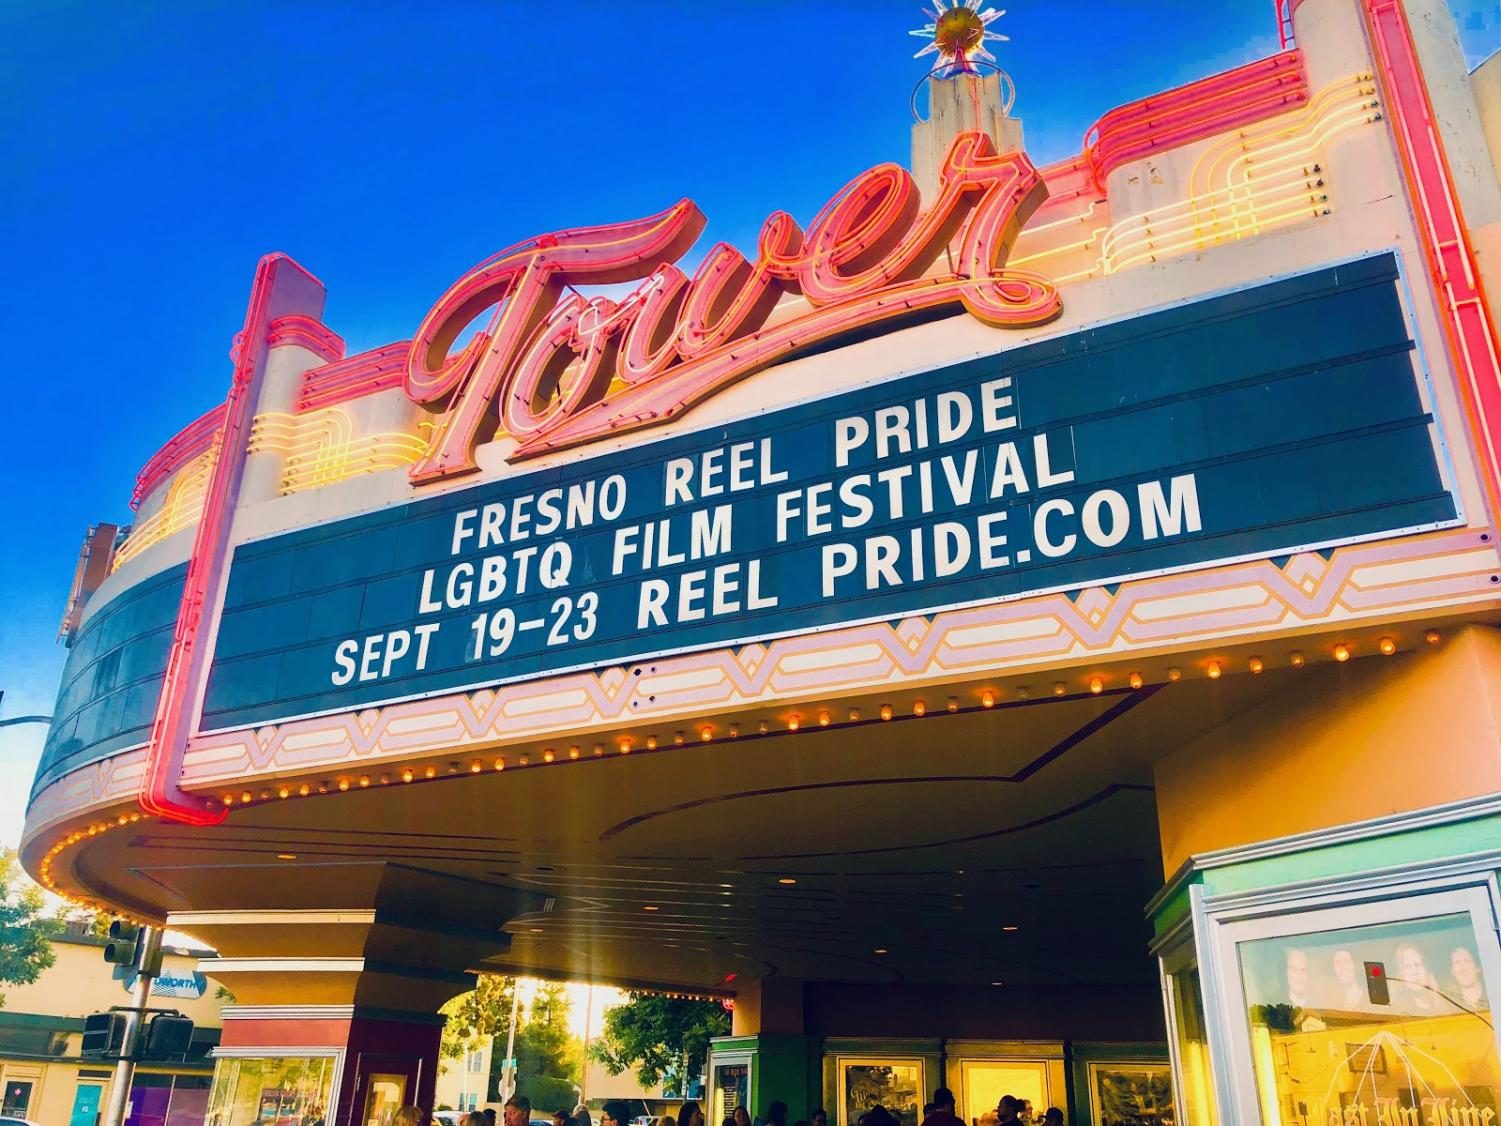 Fresno Reel Pride LGBTQ Film Festival taking place at Tower Theatre in Fresno's Tower District. Thursday, Sept. 20, 2018.